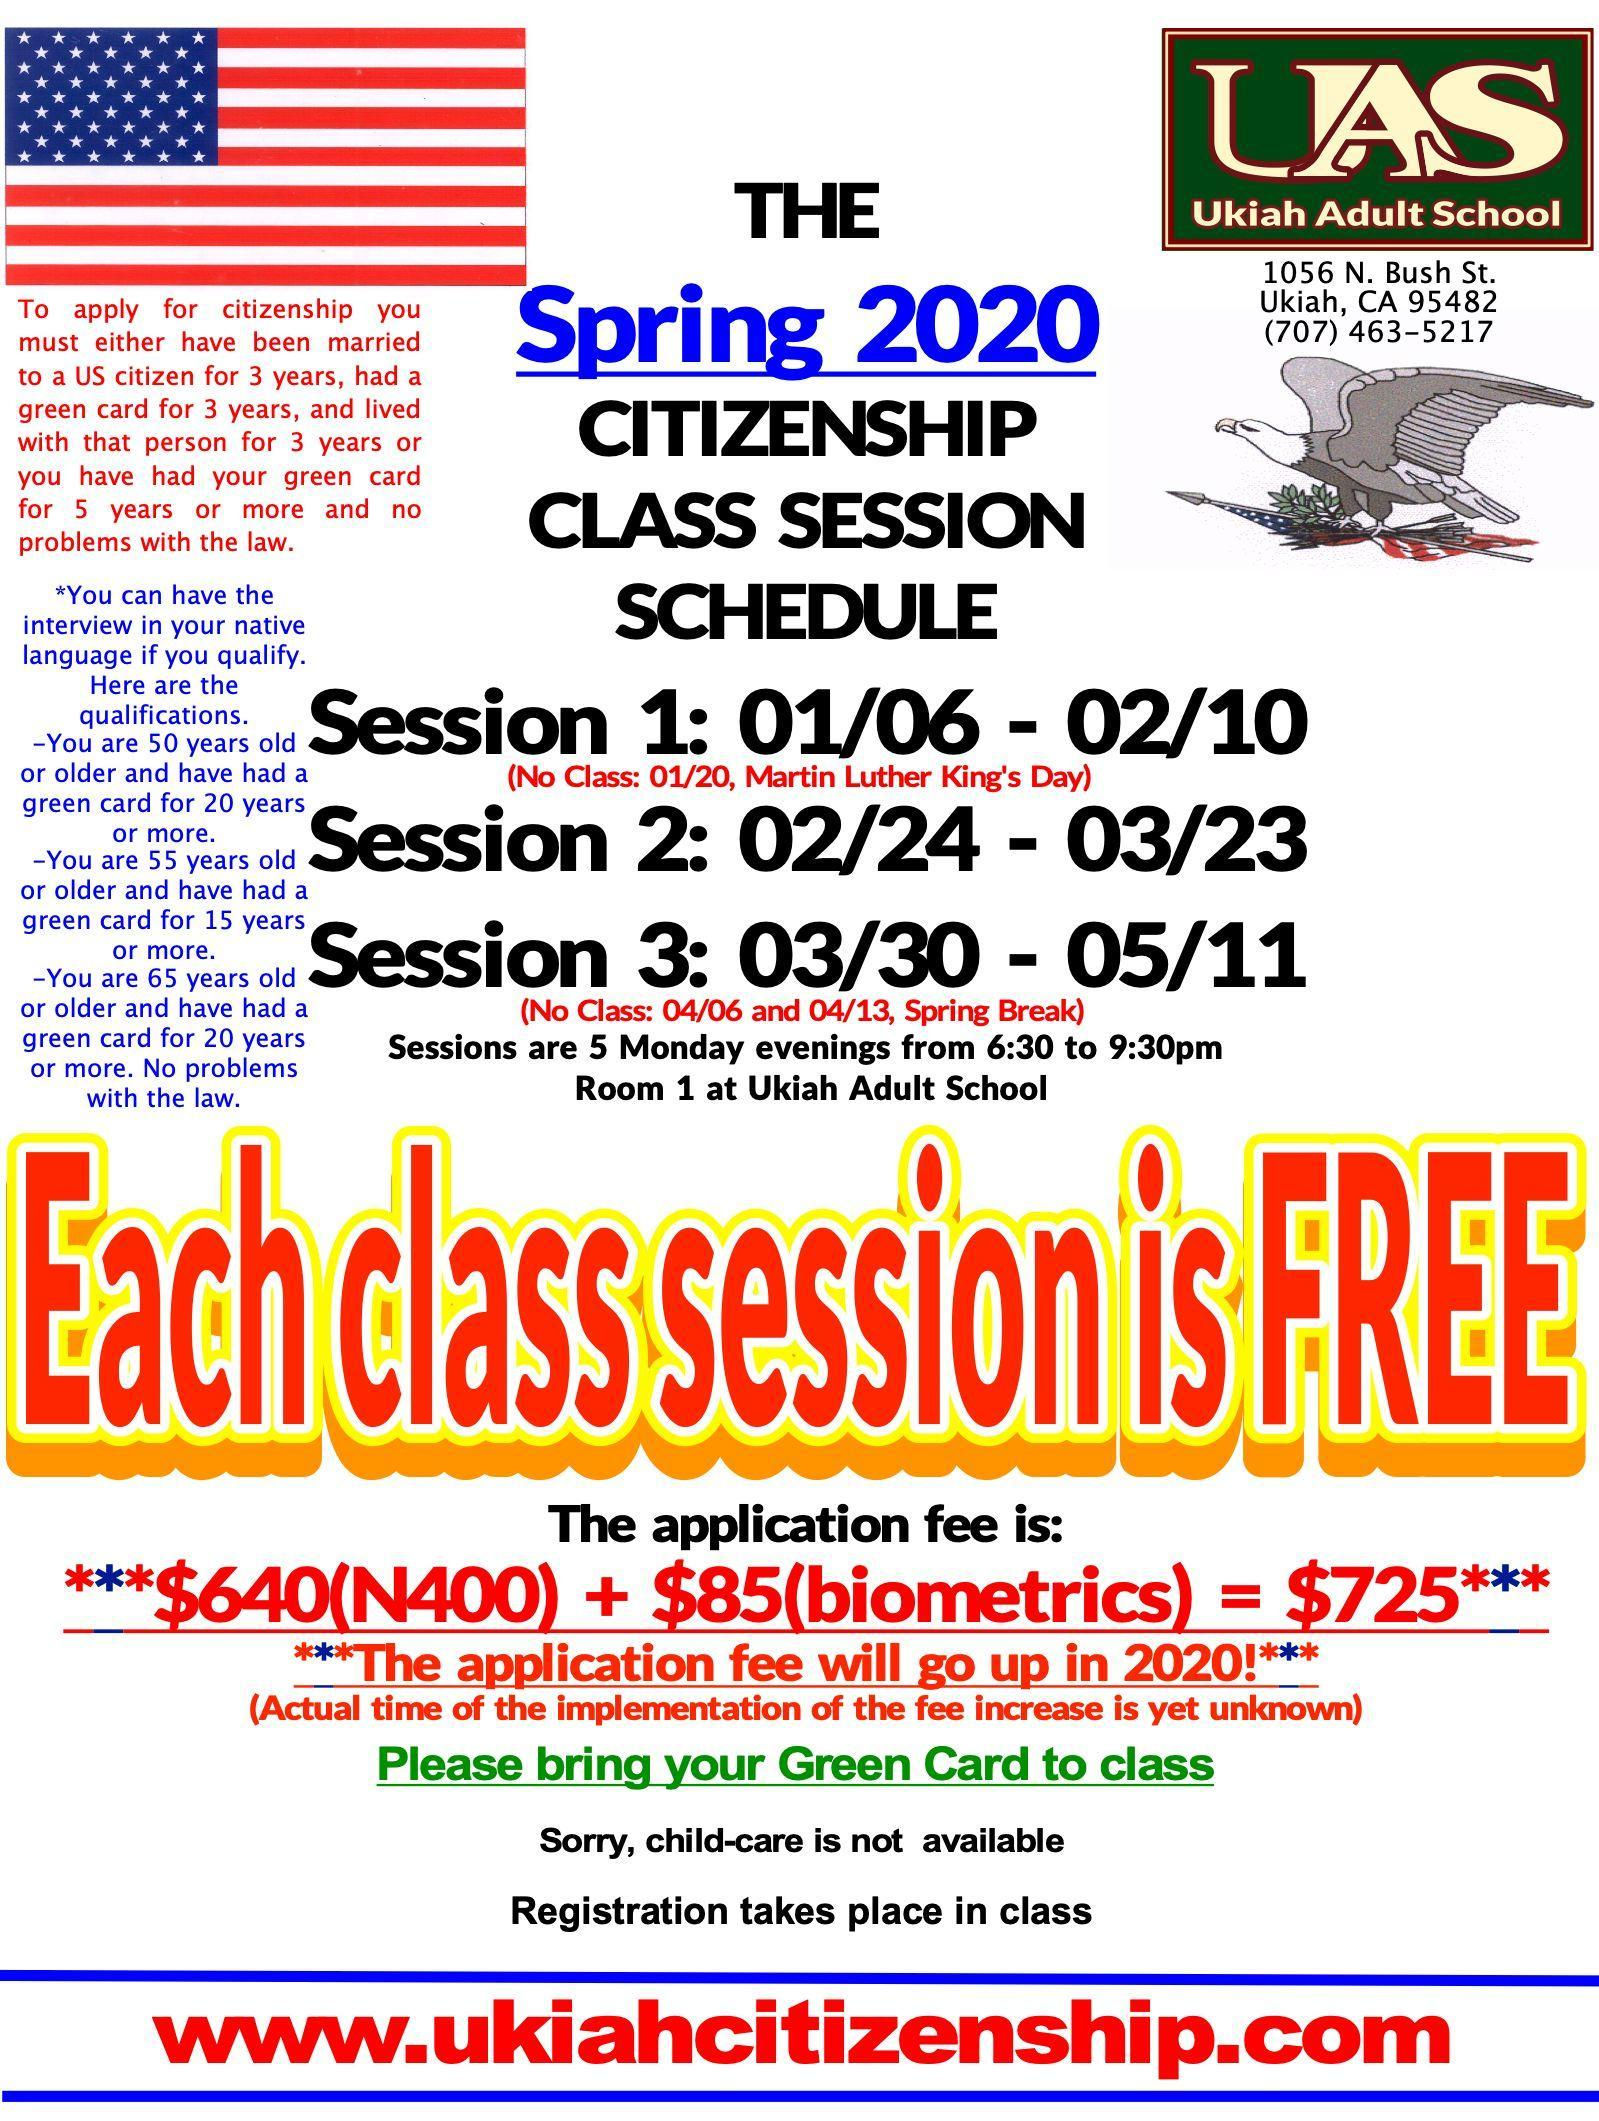 Spring 2020 Citizenship class session schedule poster.